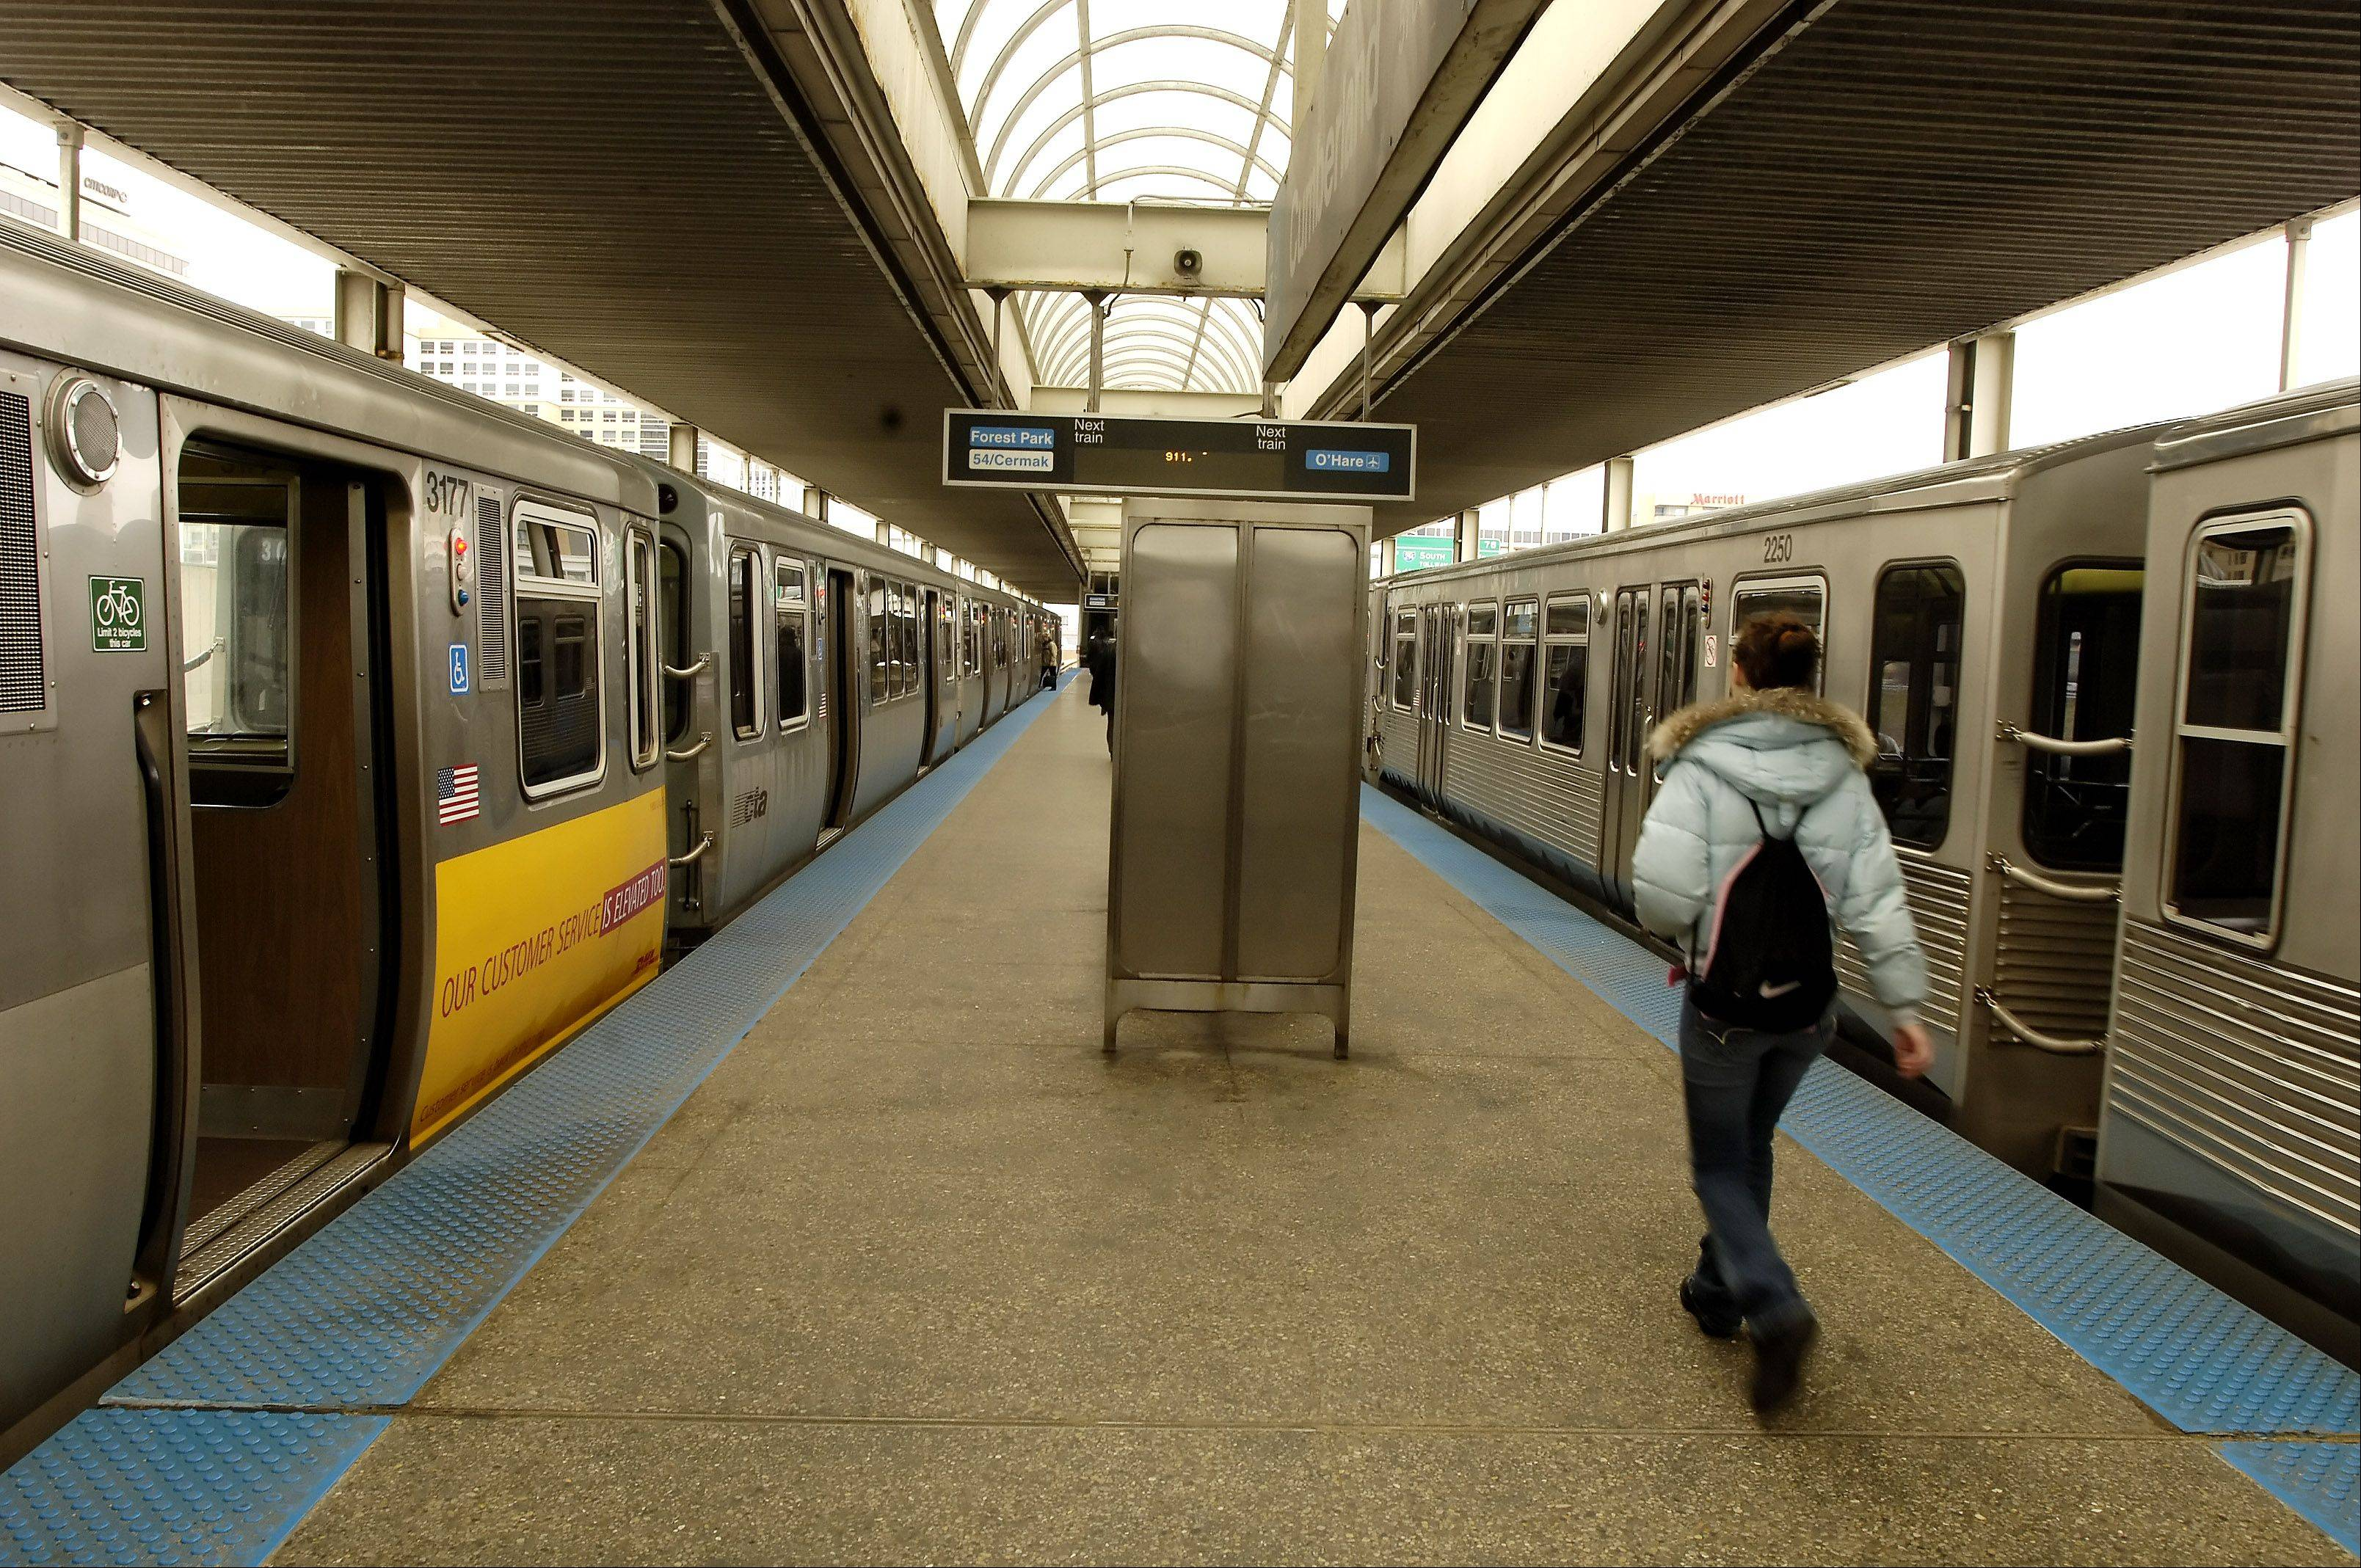 The Chicago Transit Authority troubled effort to roll out a new fare collection system has forced the agency to restore fare options it discontinued earlier this week.